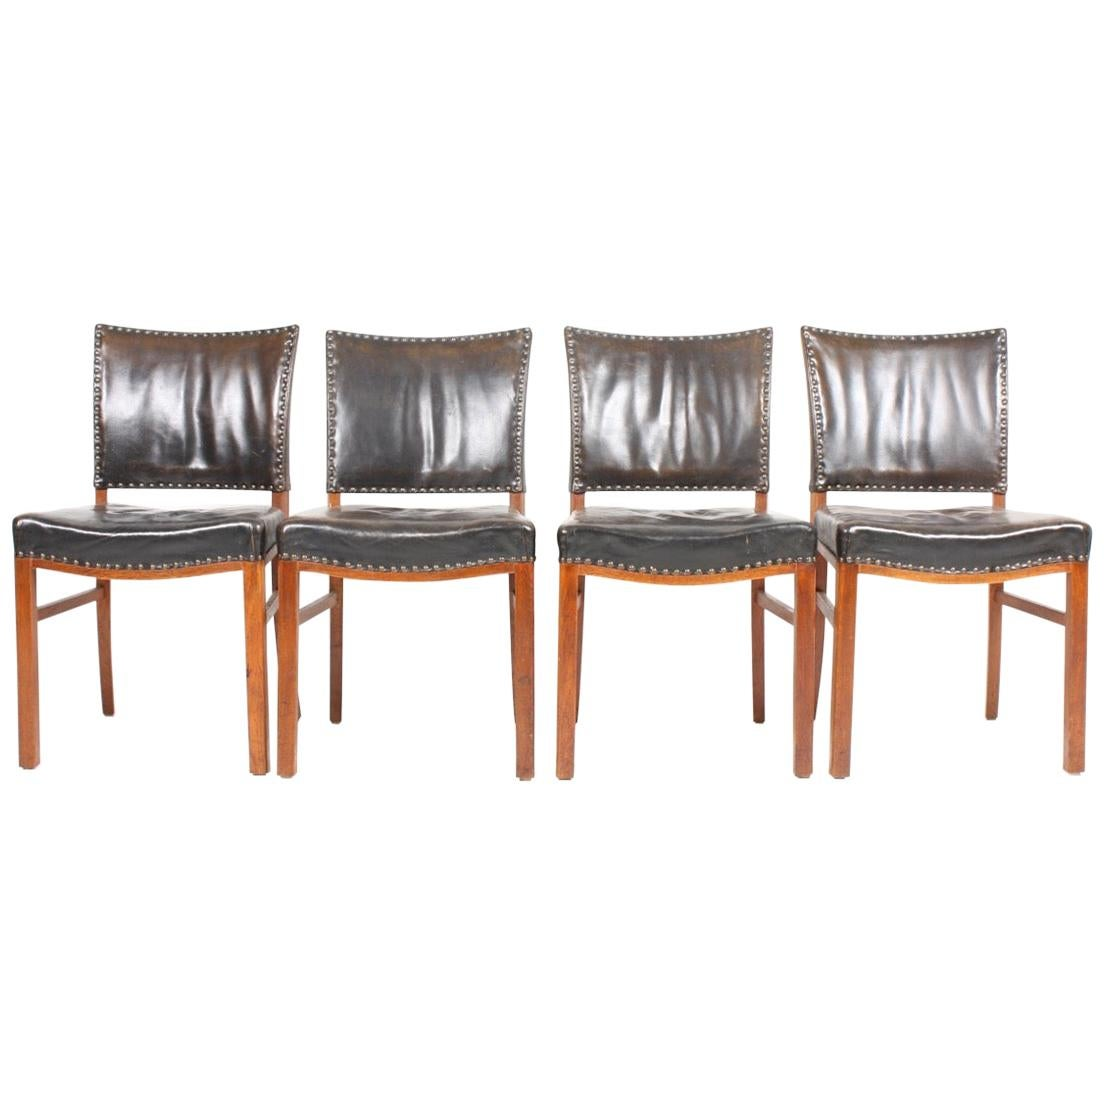 Set of Four Midcentury Side Chairs in Patinated Leather by Fritz Hansen, Danish